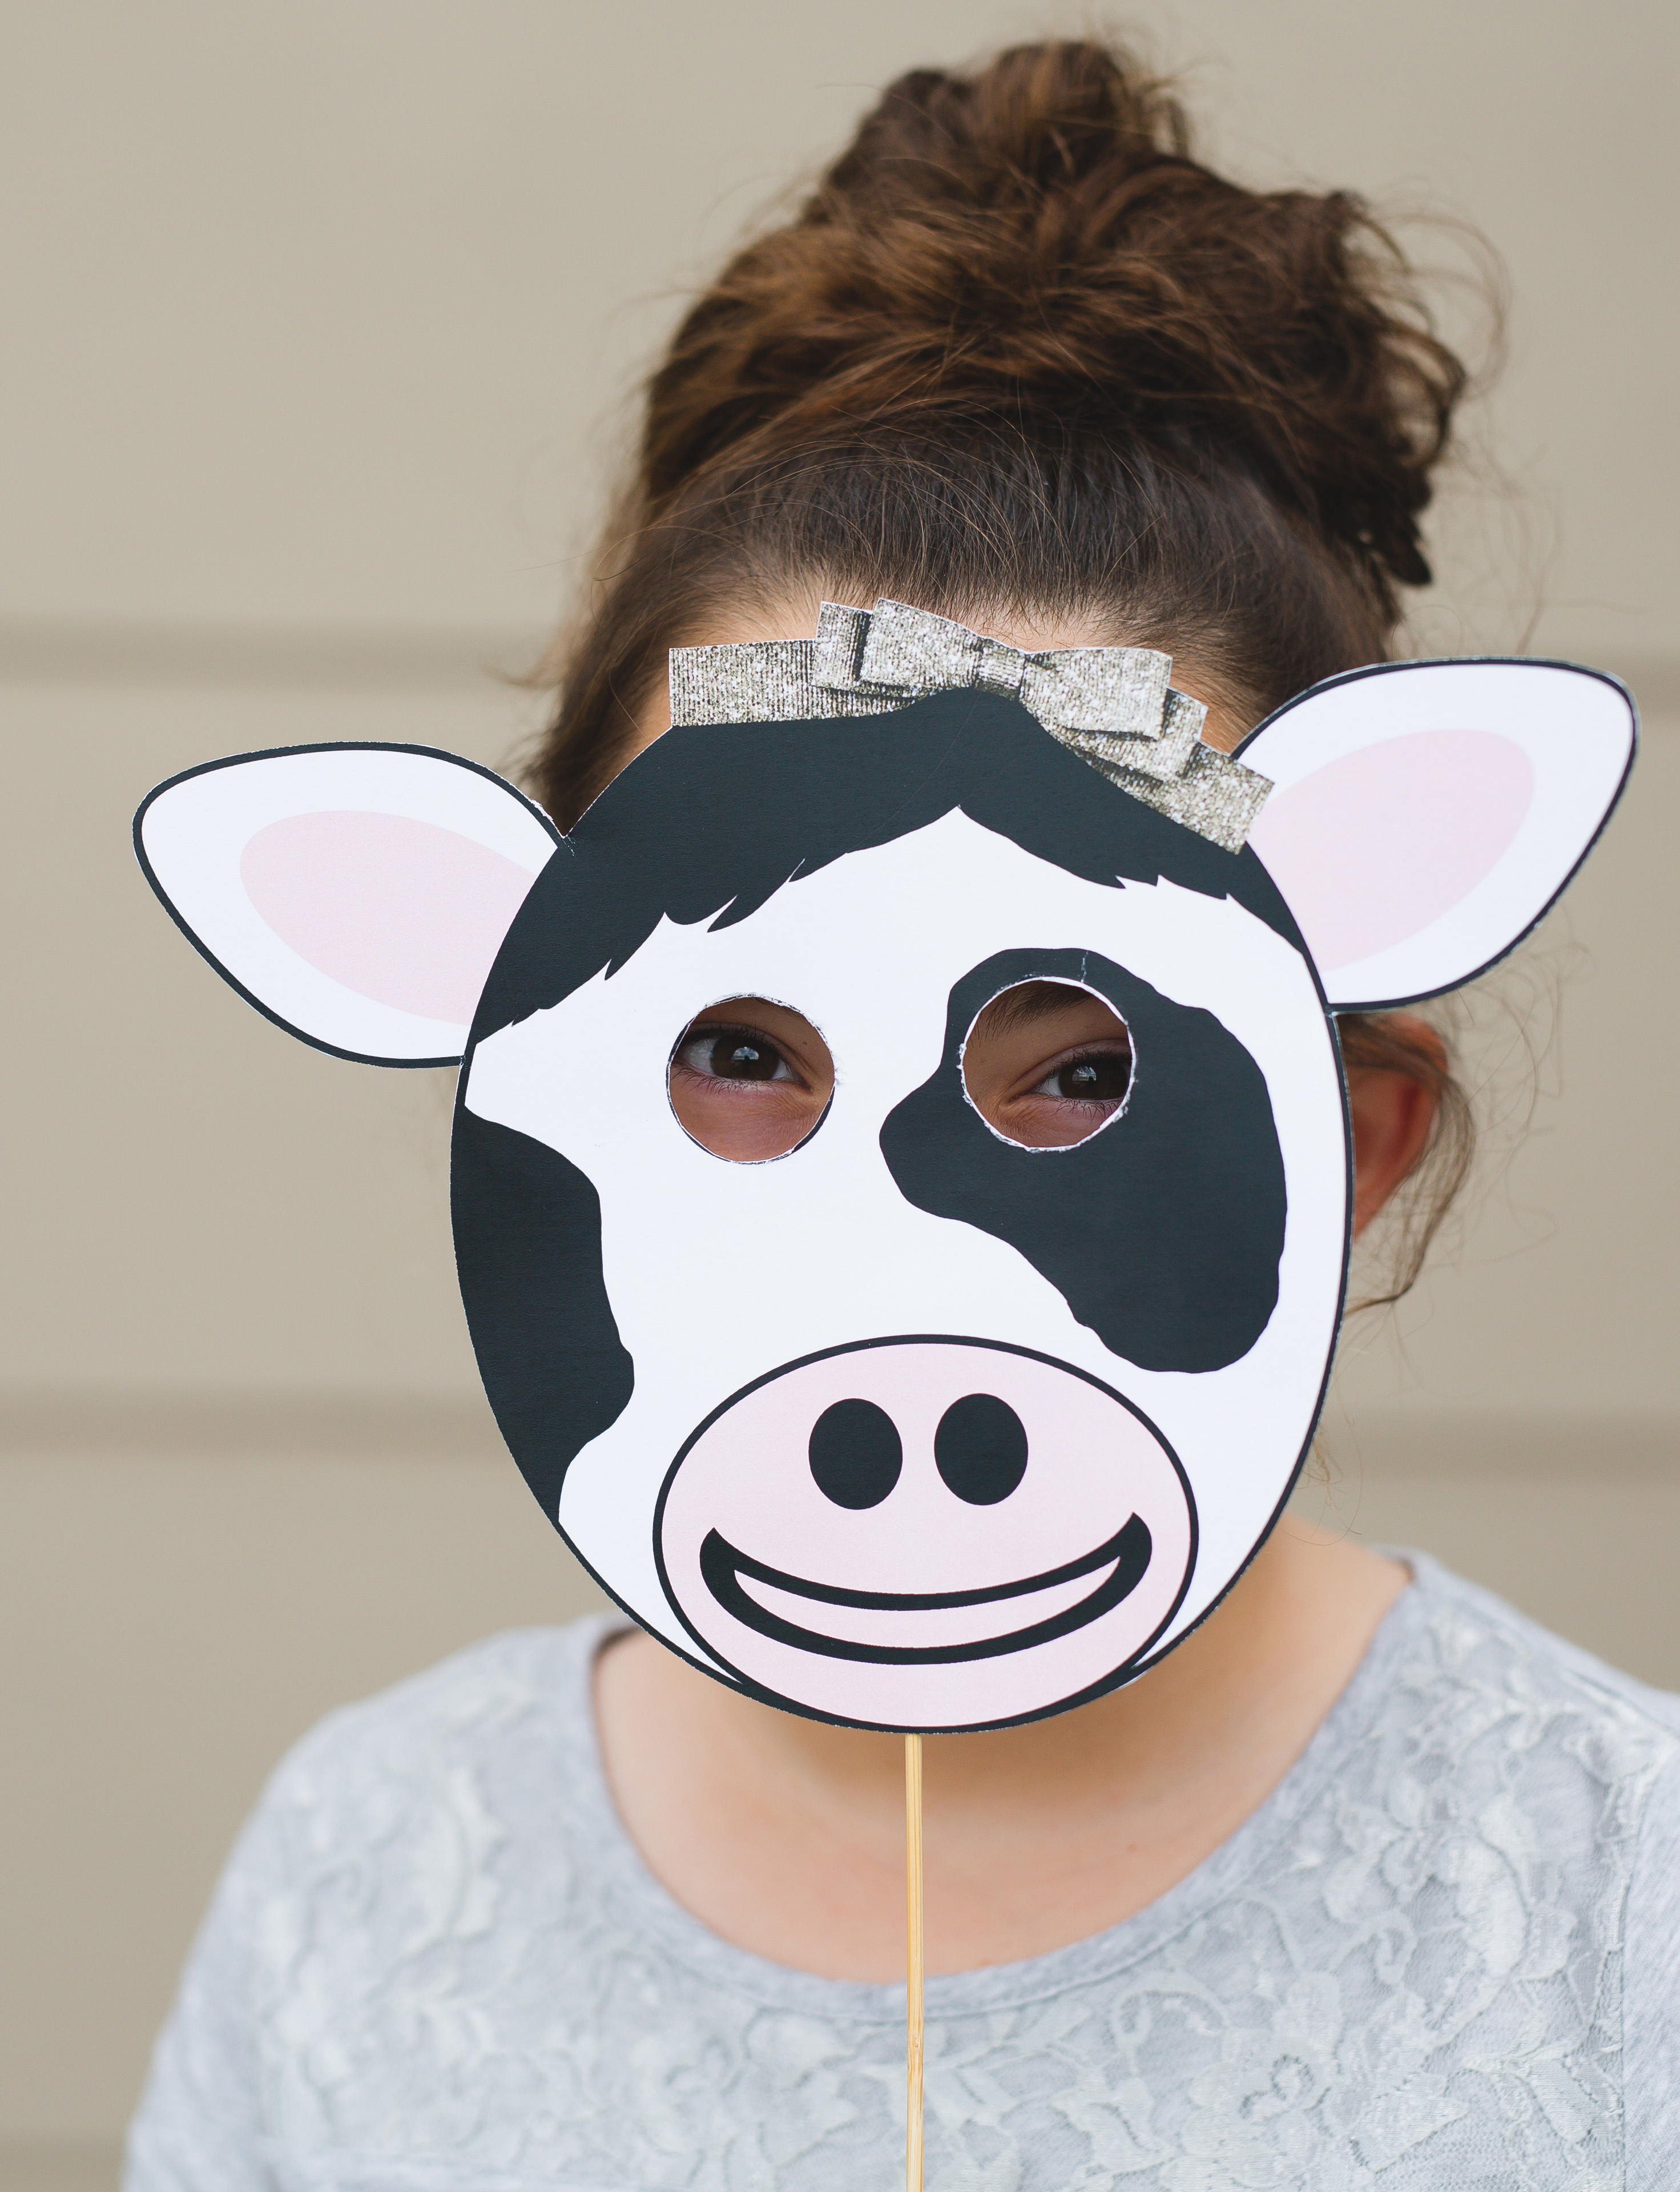 picture about Cow Mask Printable named Chick Fil A Cow Mask - 6 Sensible Sisters